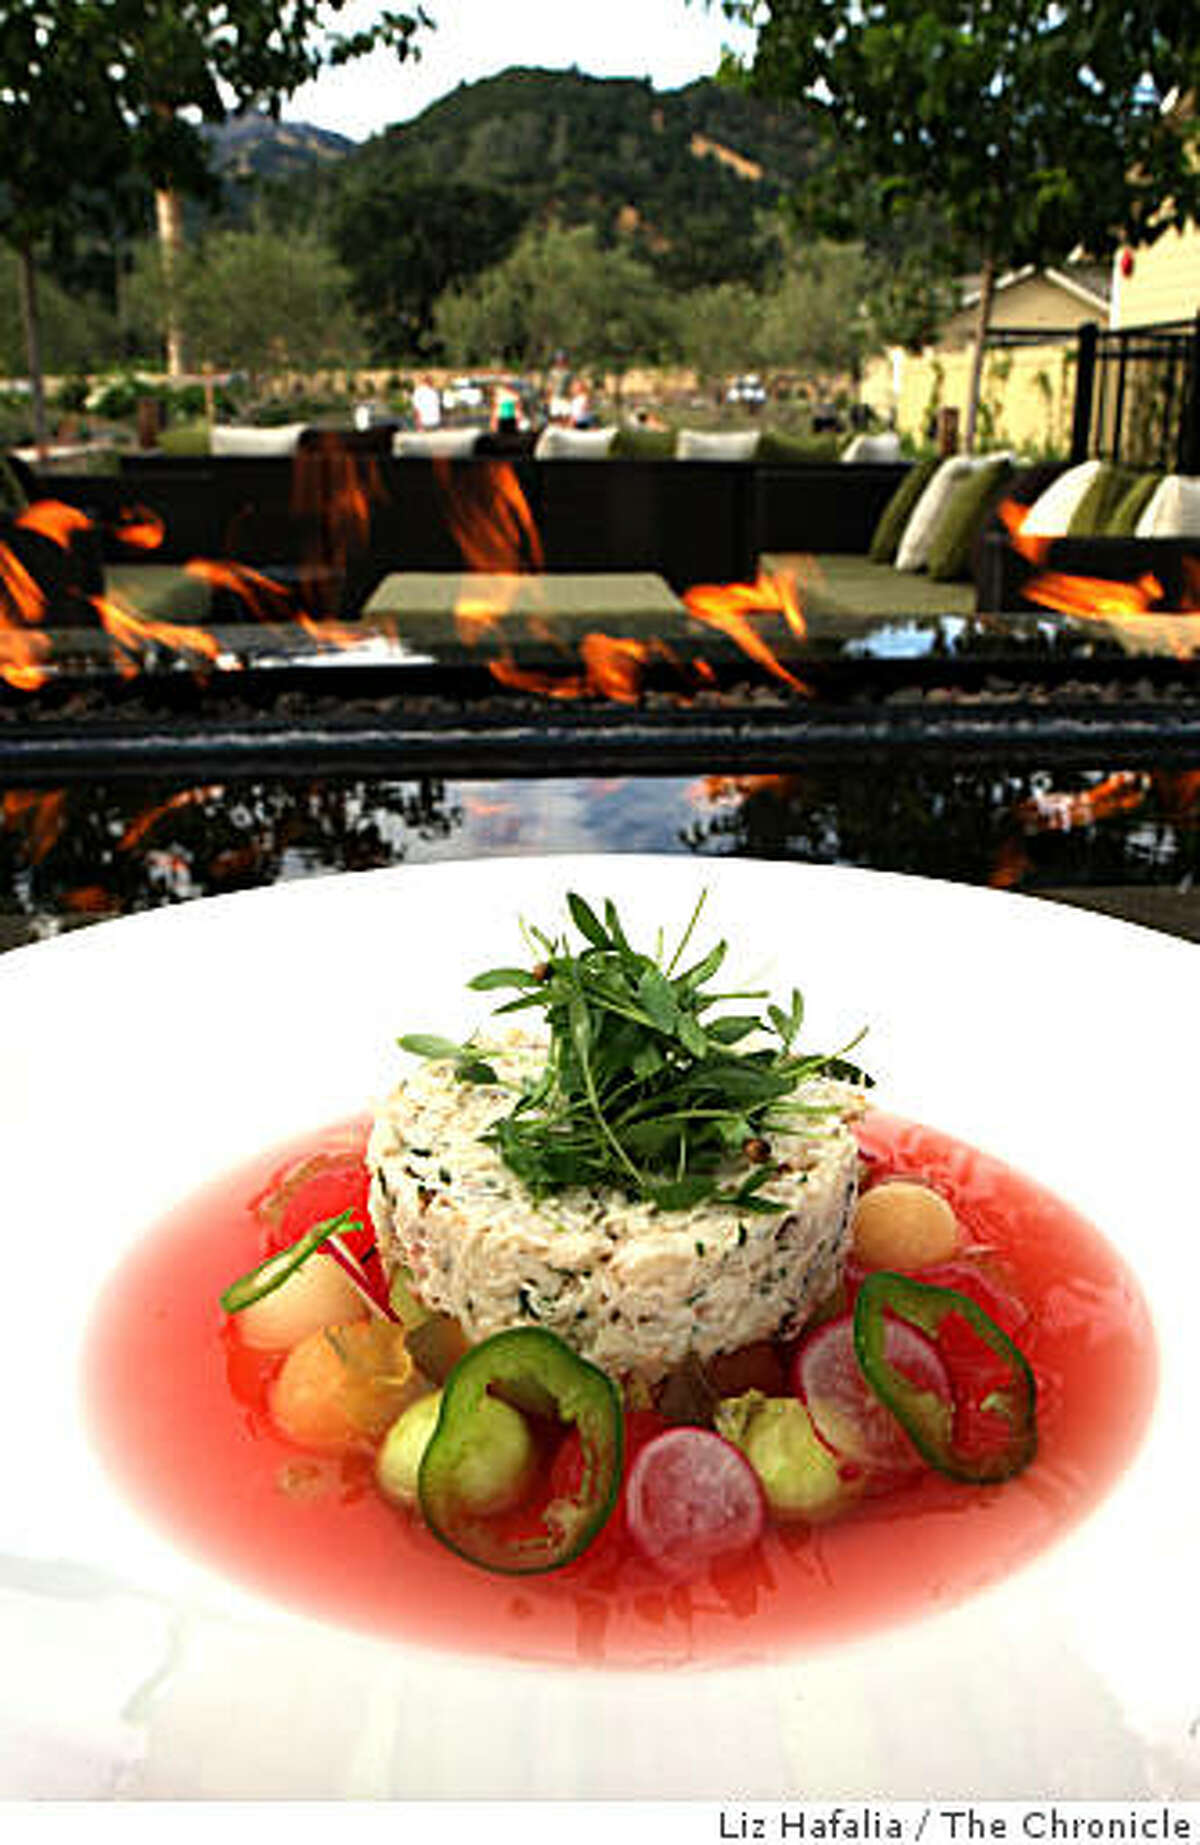 A crab salad at Solbar, a restaurant at the Solage resort in Calistoga, Calif., on Tuesday, August 5, 2008.